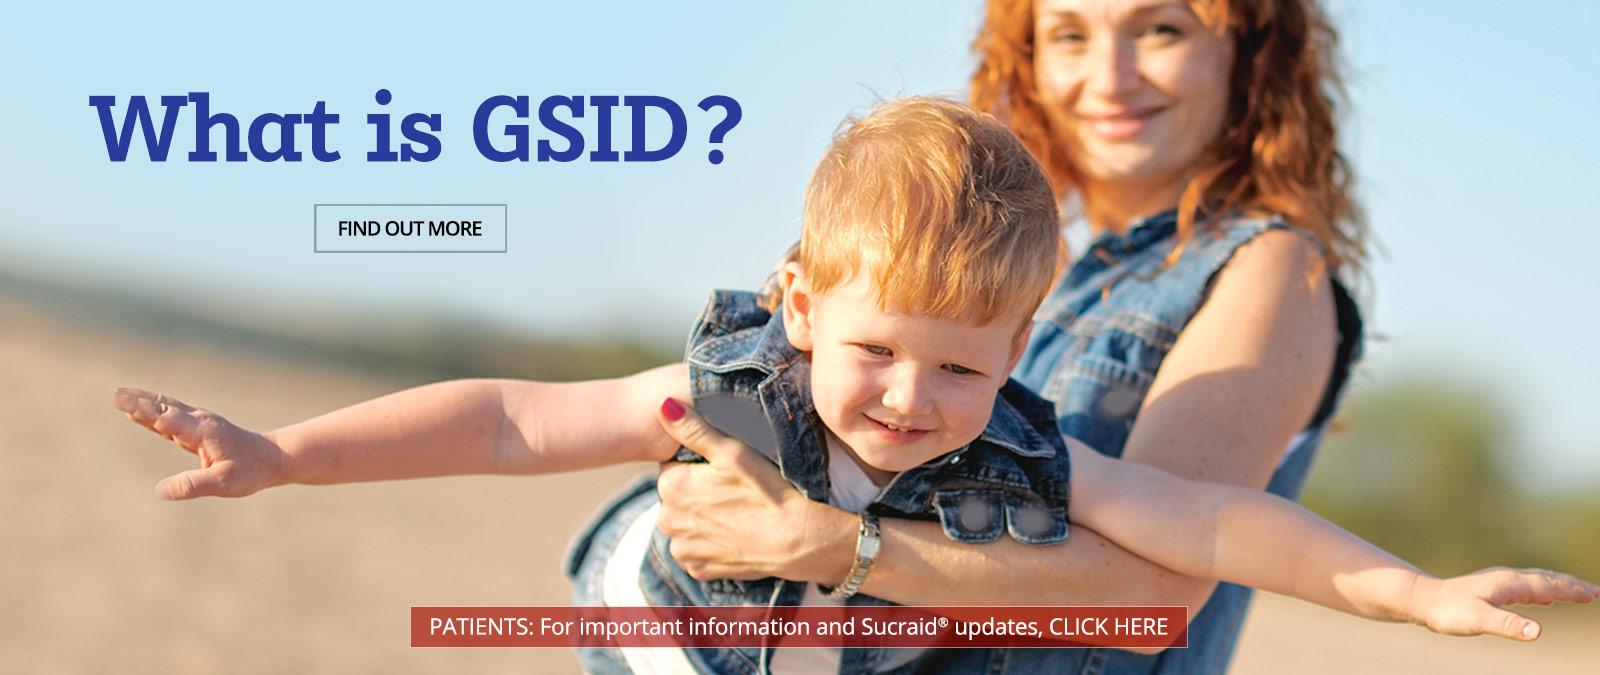 About GSID